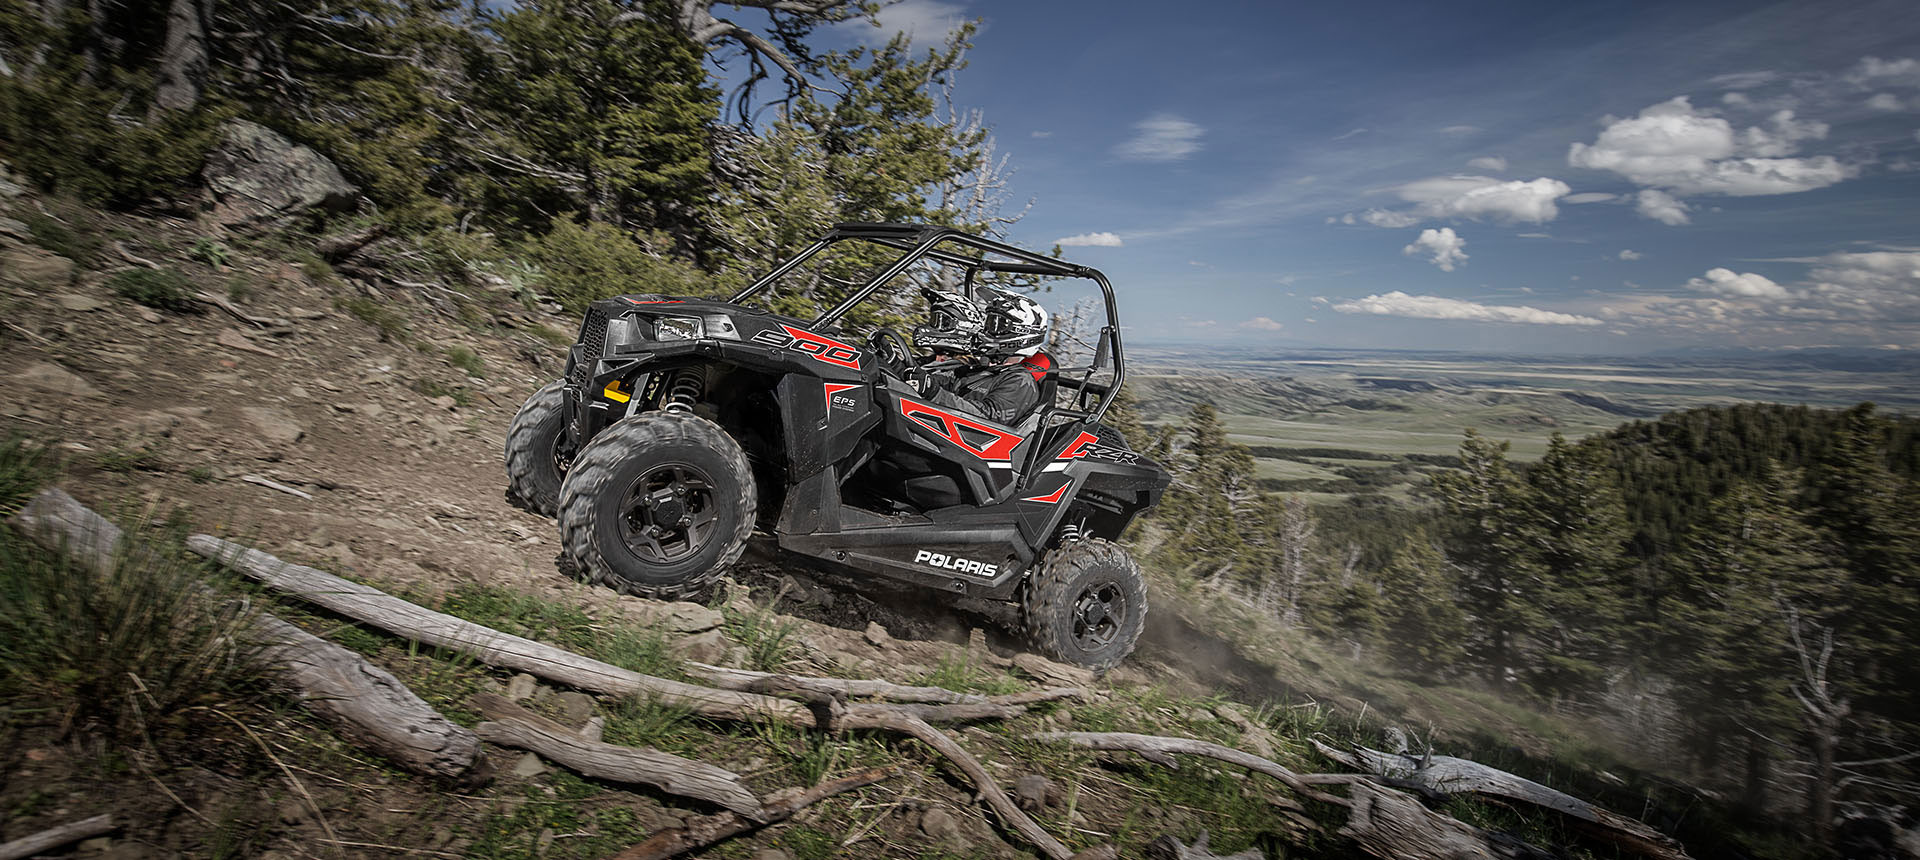 2020 RZR<sup>®</sup> Trail 900 Instagram image 4